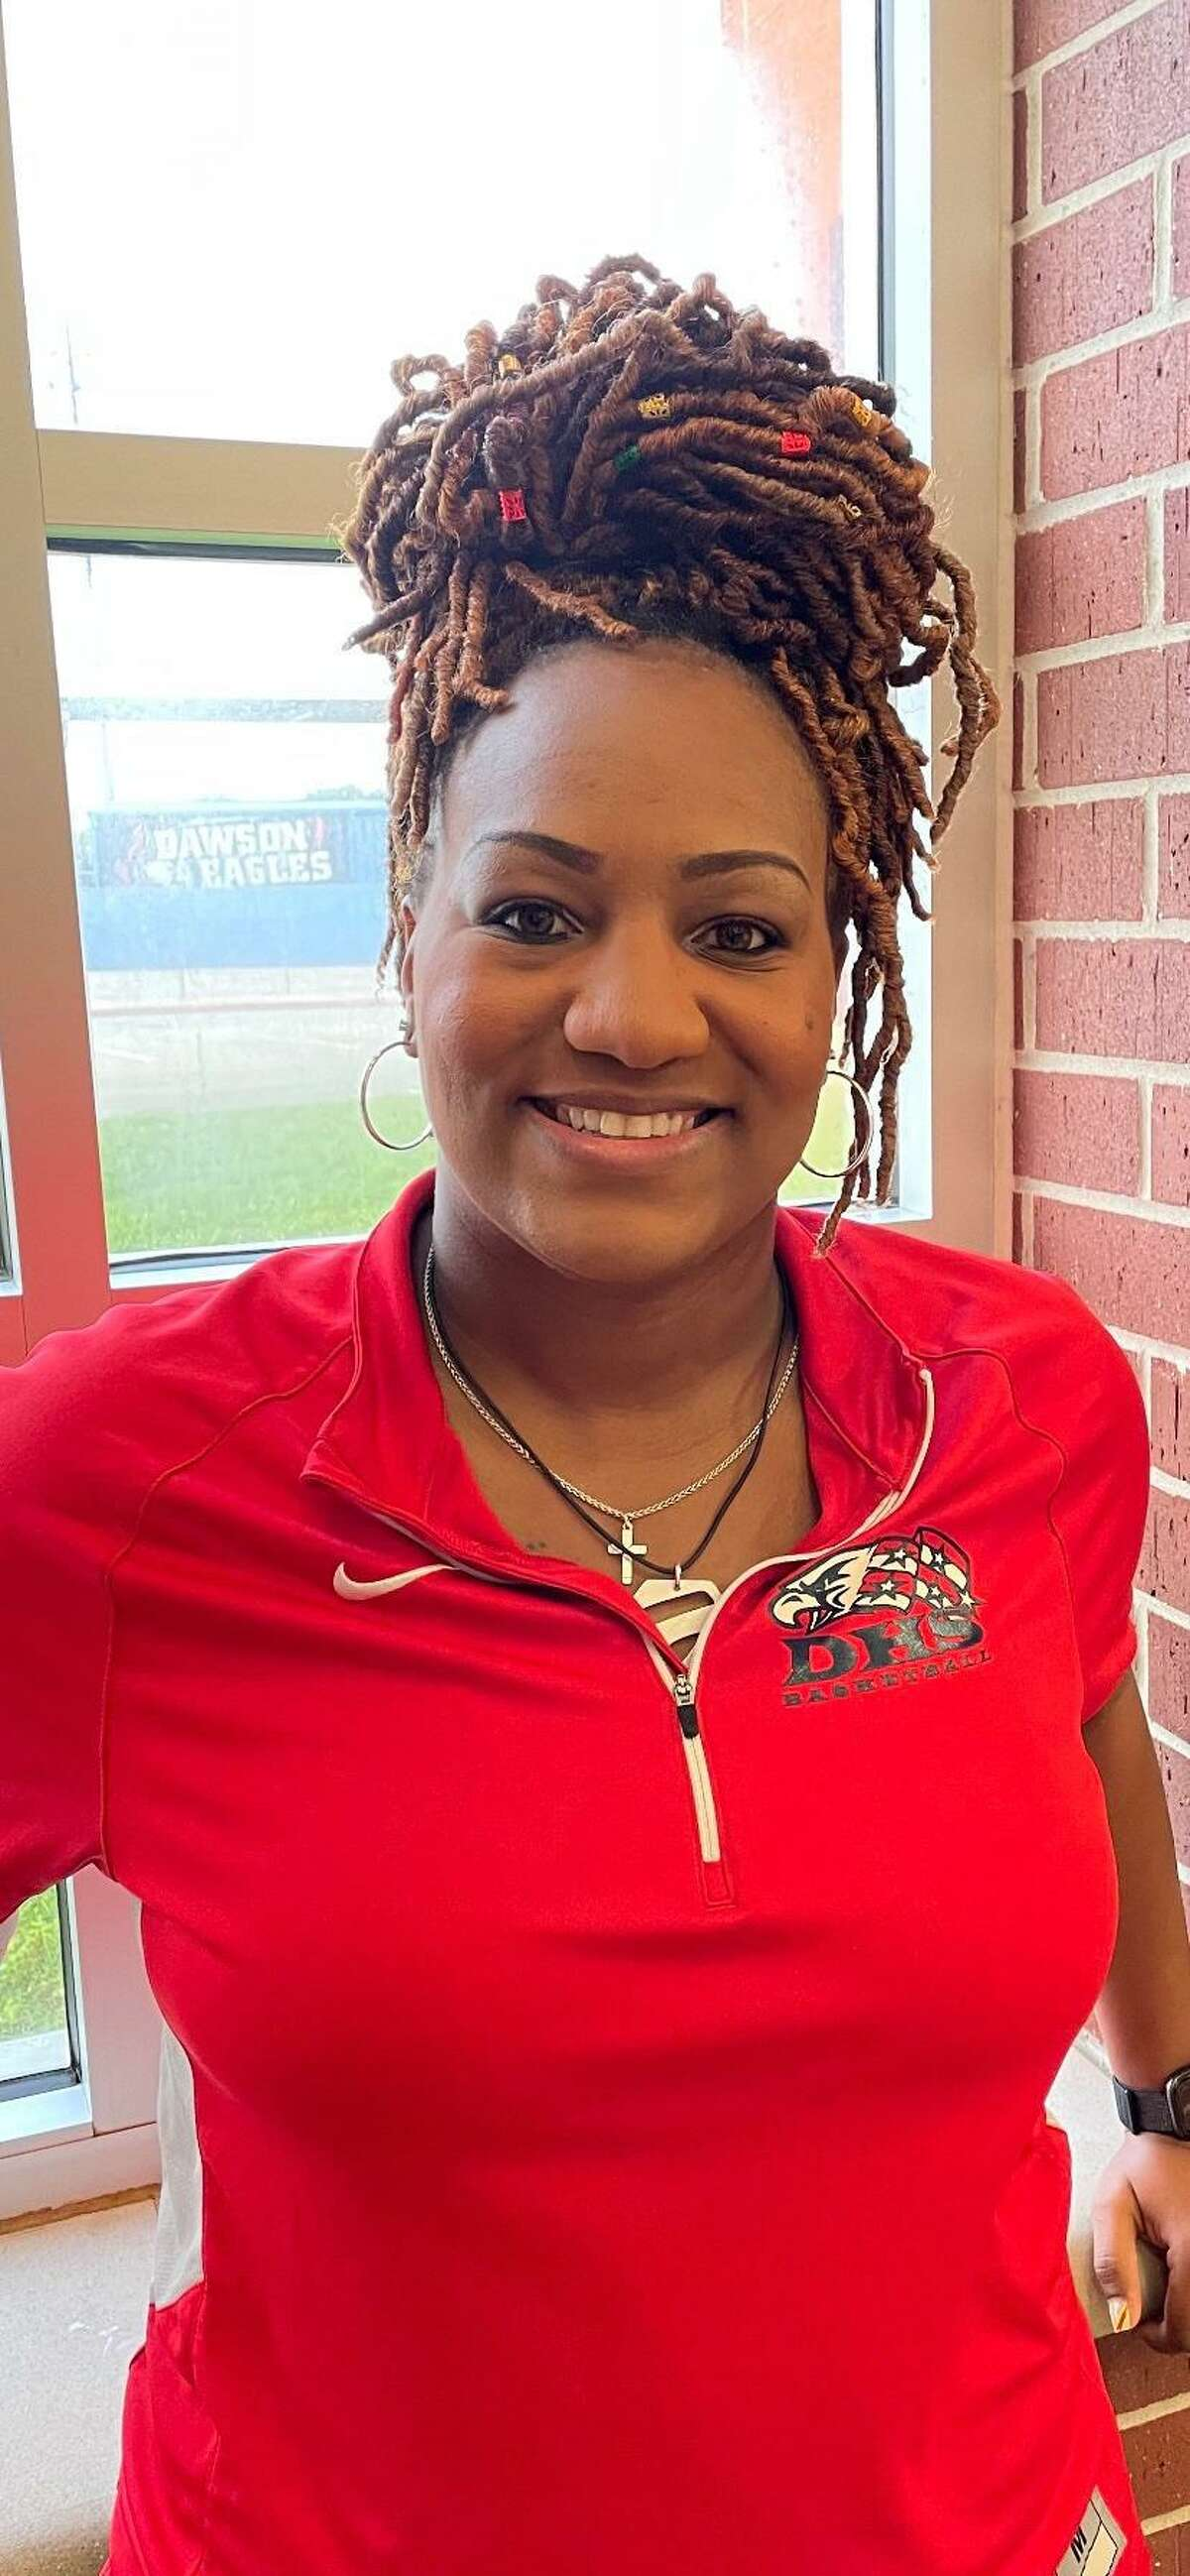 Sharee Griffin has been named the new head coach of the Dawson varsity girls' basketball team.